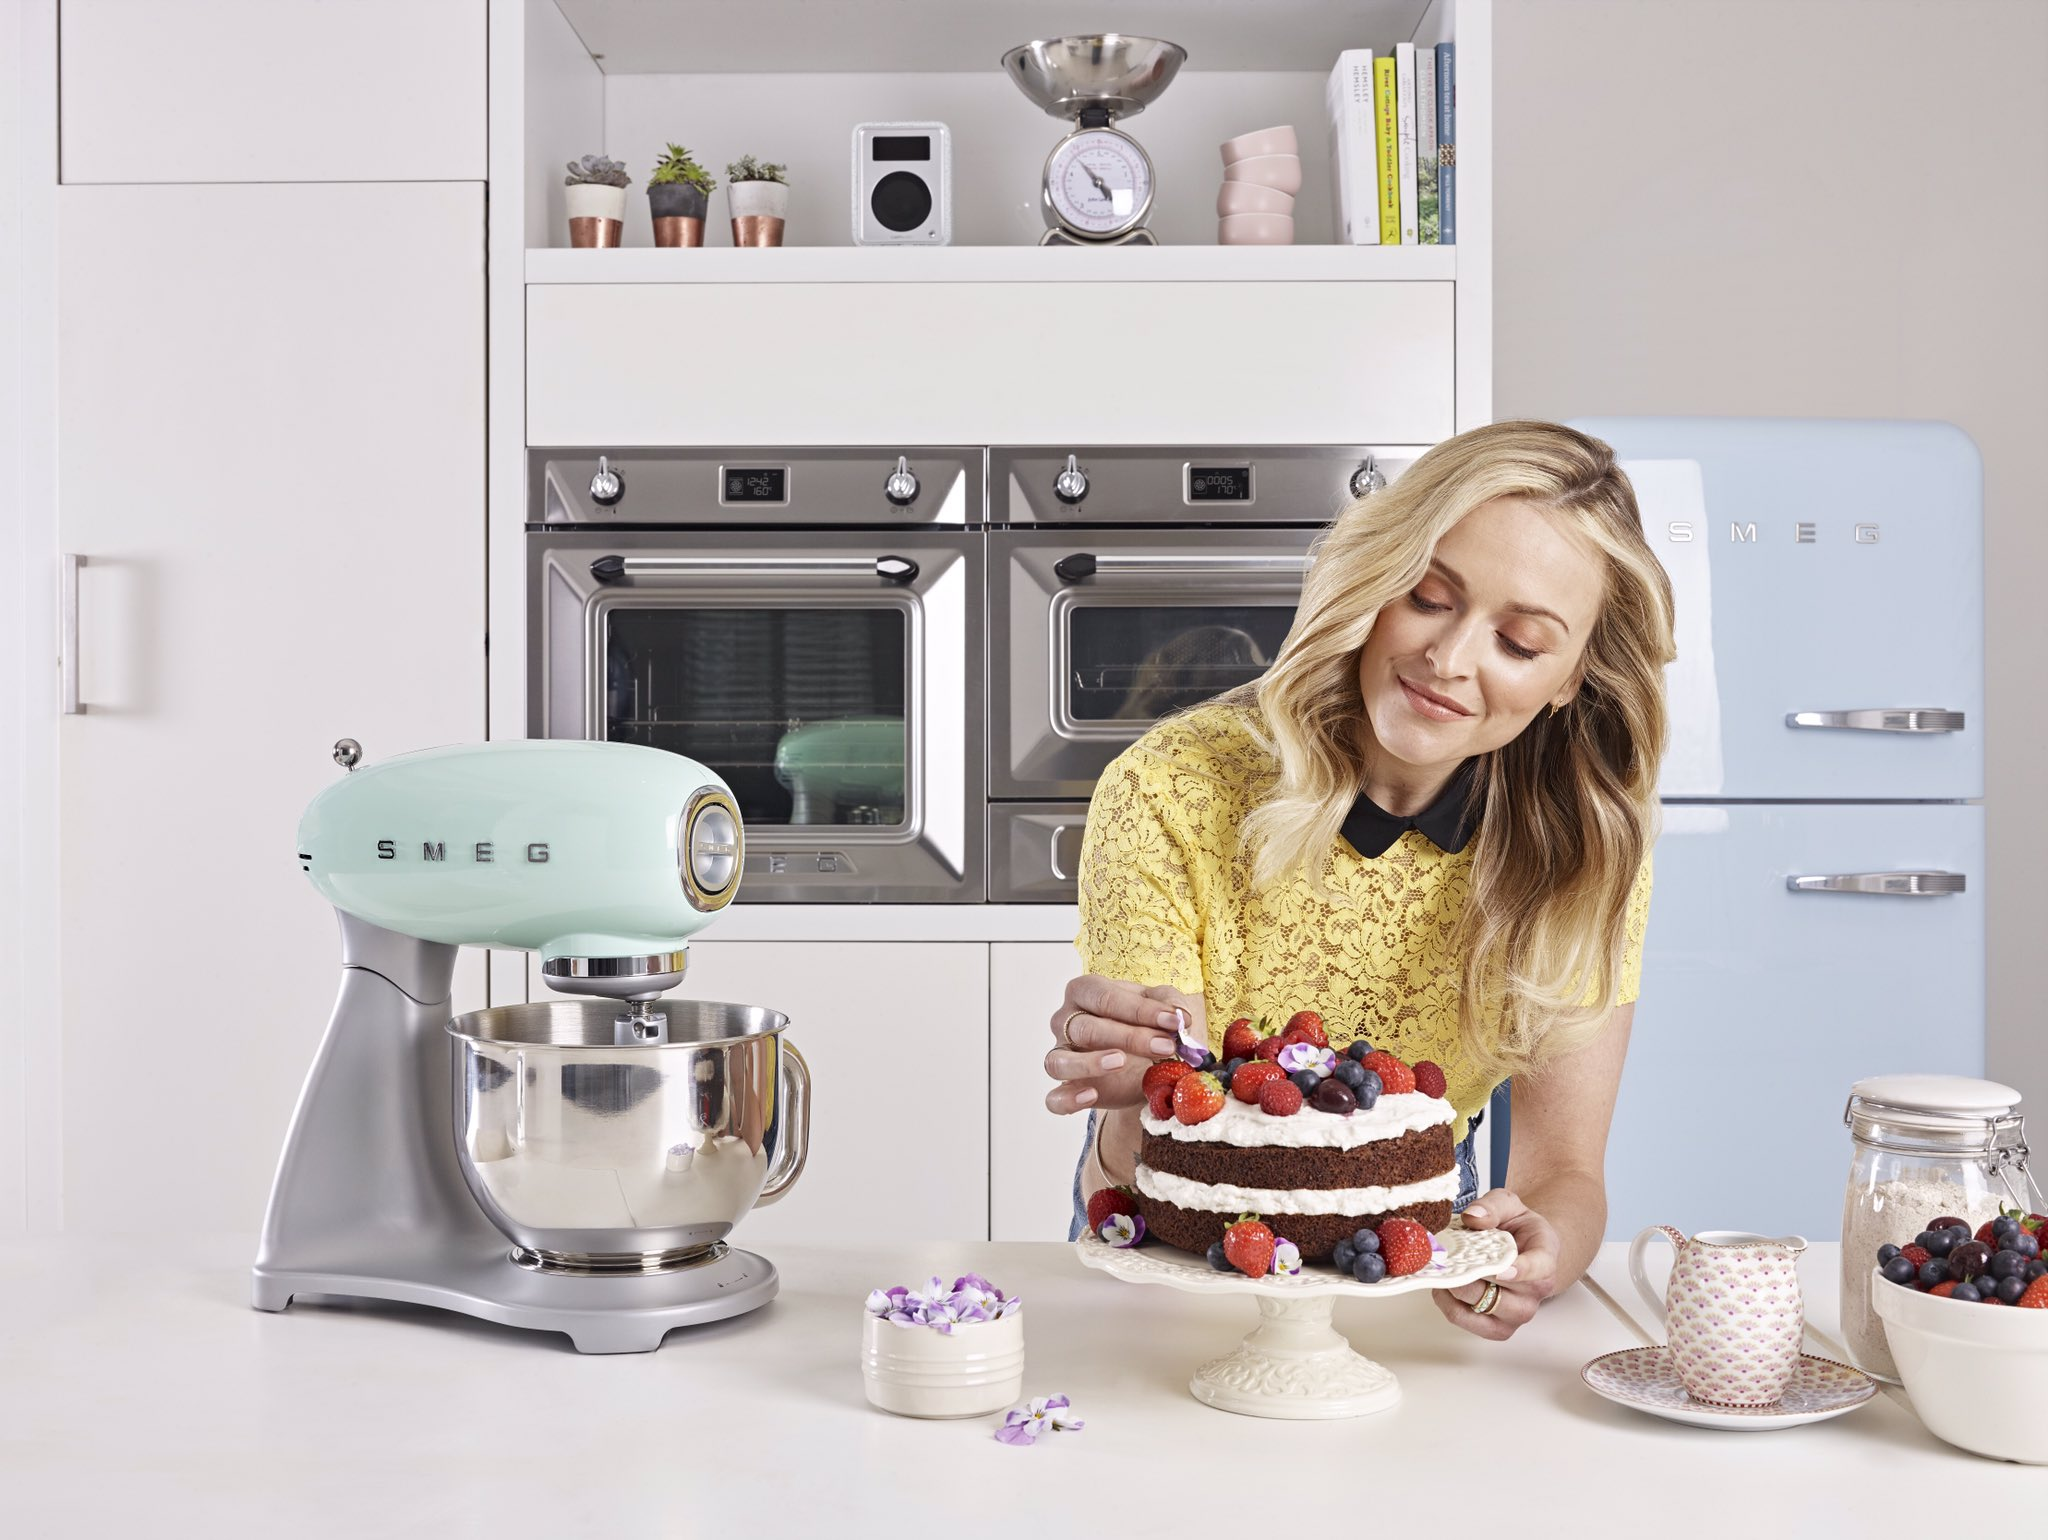 I want to see u #CookHappy! Tweet me a pic with #CookHappy for a chance to win my book & @smeguk Retro Stand Mixer! https://t.co/KFm8P0ytJN